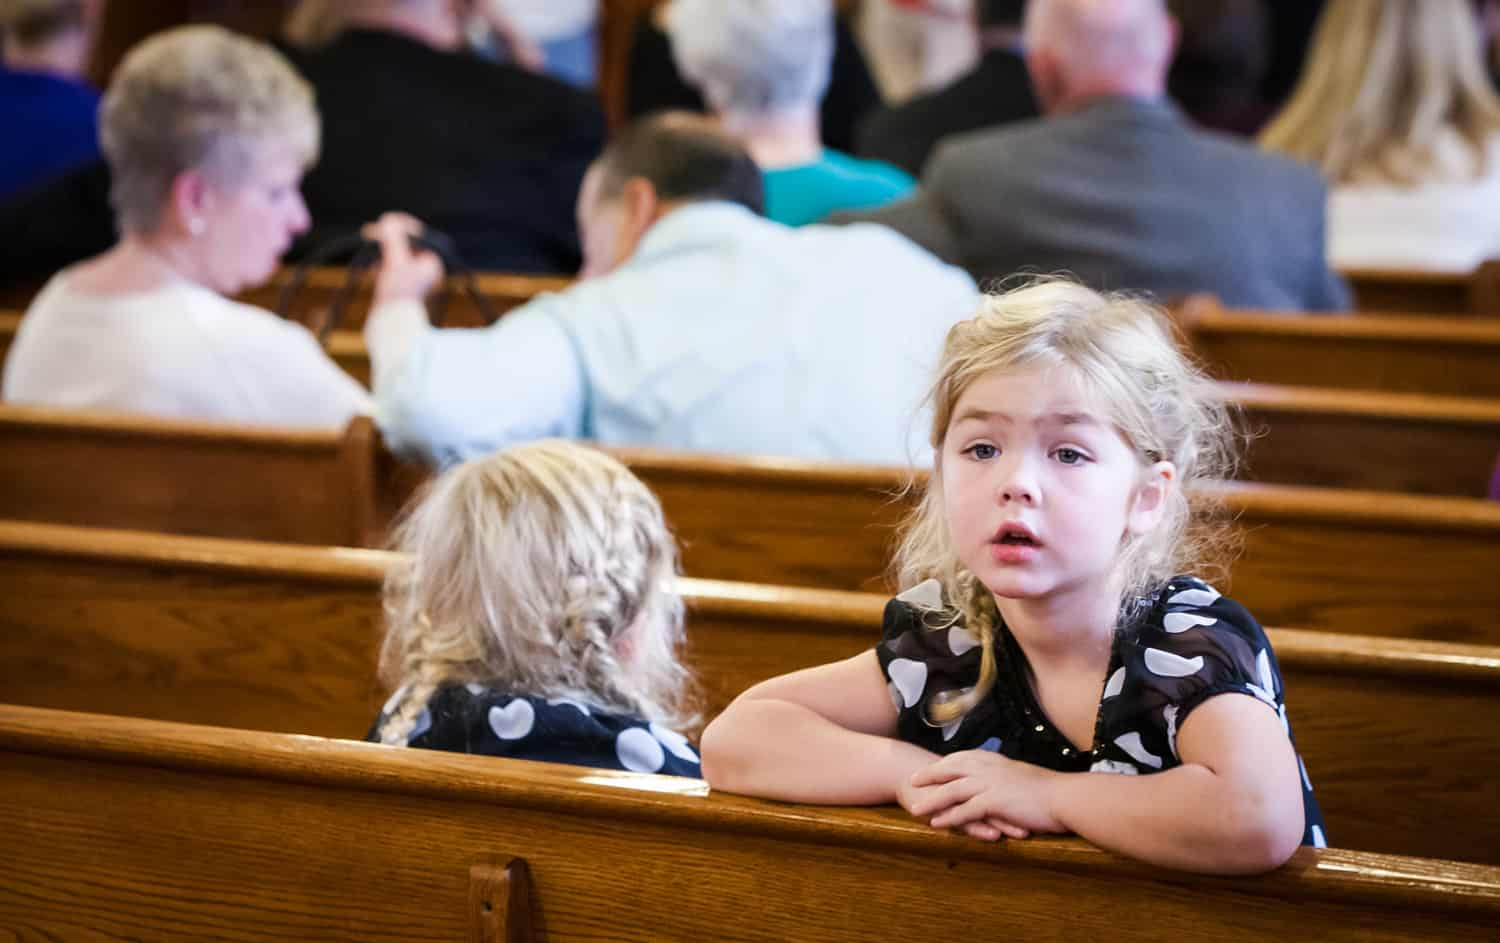 Little girl turned around in pew during wedding ceremony